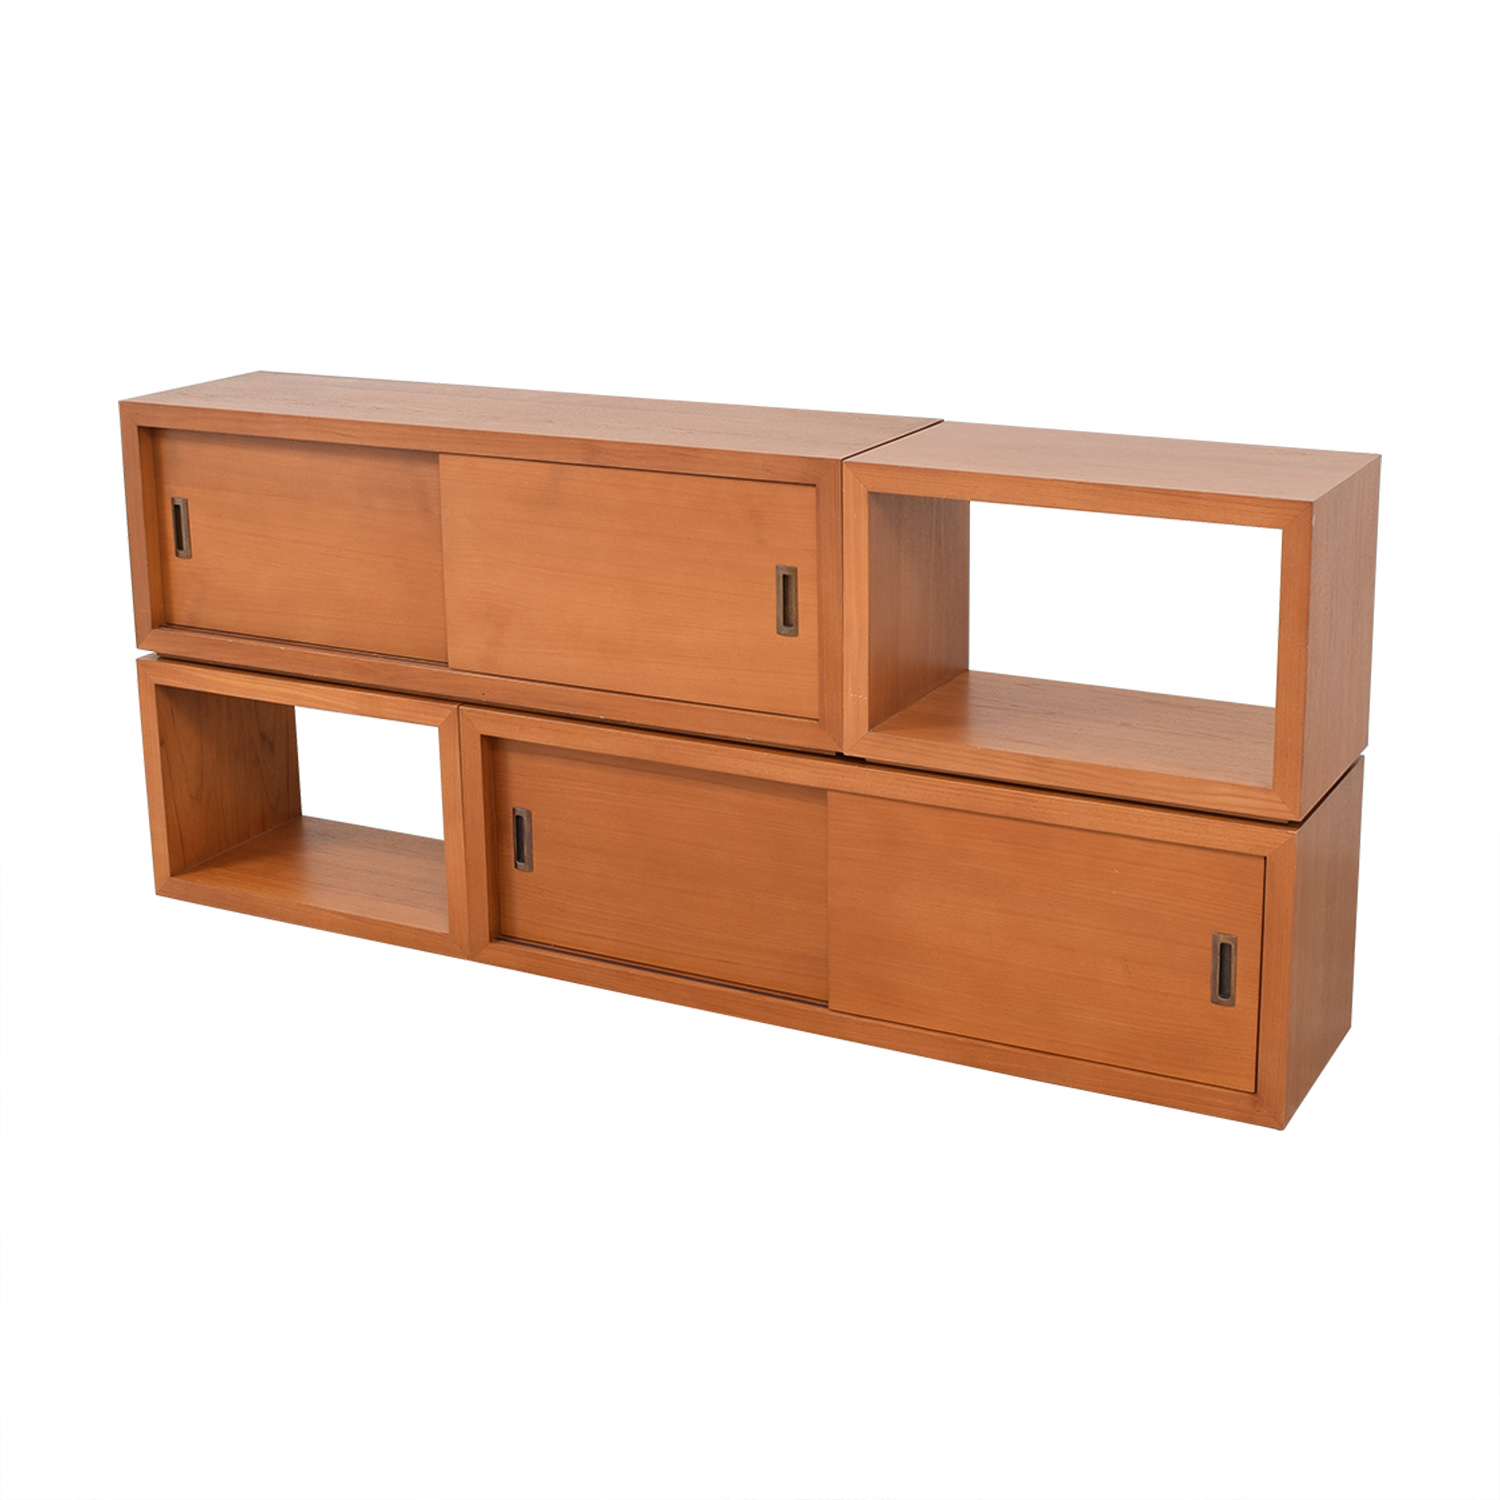 shop Crate & Barrel Crate & Barrel Aspect Modular Storage Unit online